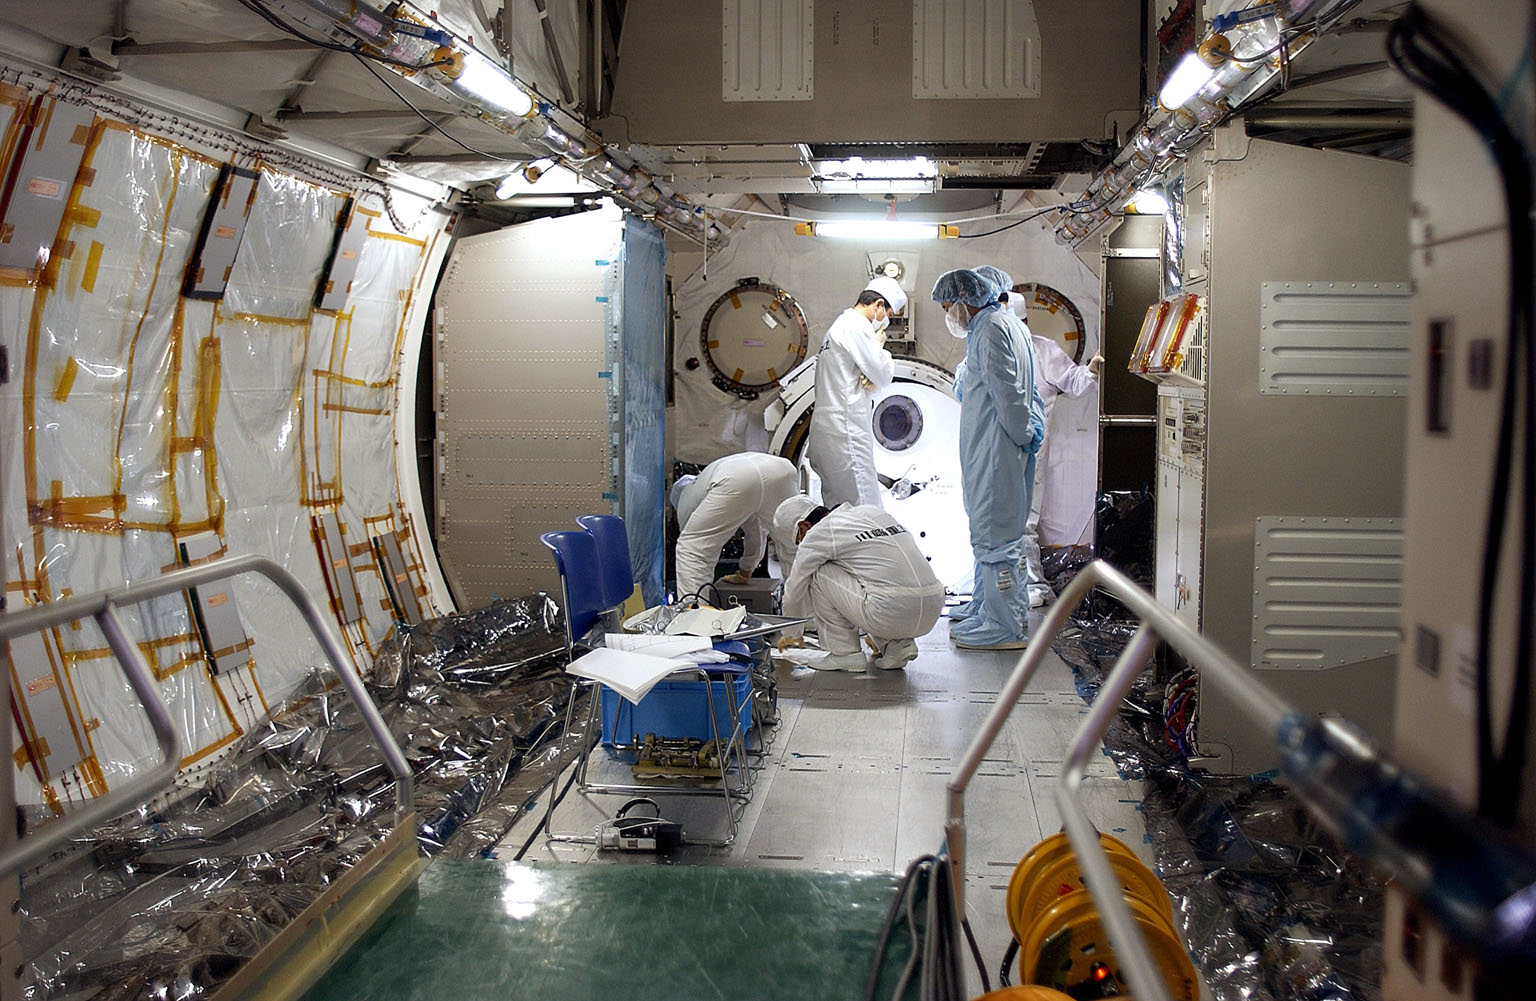 KENNEDY SPACE CENTER, FLA. - In the Space Station Processing Facility, Japanese astronaut Koichi Wakata, dressed in blue protective clothing (at right), looks at the inside of the Pressurized Module, or PM, part of the Japanese Experiment Module (JEM), along with technicians. The PM provides a shirt-sleeve environment in which astronauts on the International Space Station can conduct microgravity experiments. There are a total of 23 racks, including 10 experiment racks, inside the PM providing a power supply, communications, air conditioning, hardware cooling, water control and experiment support functions.